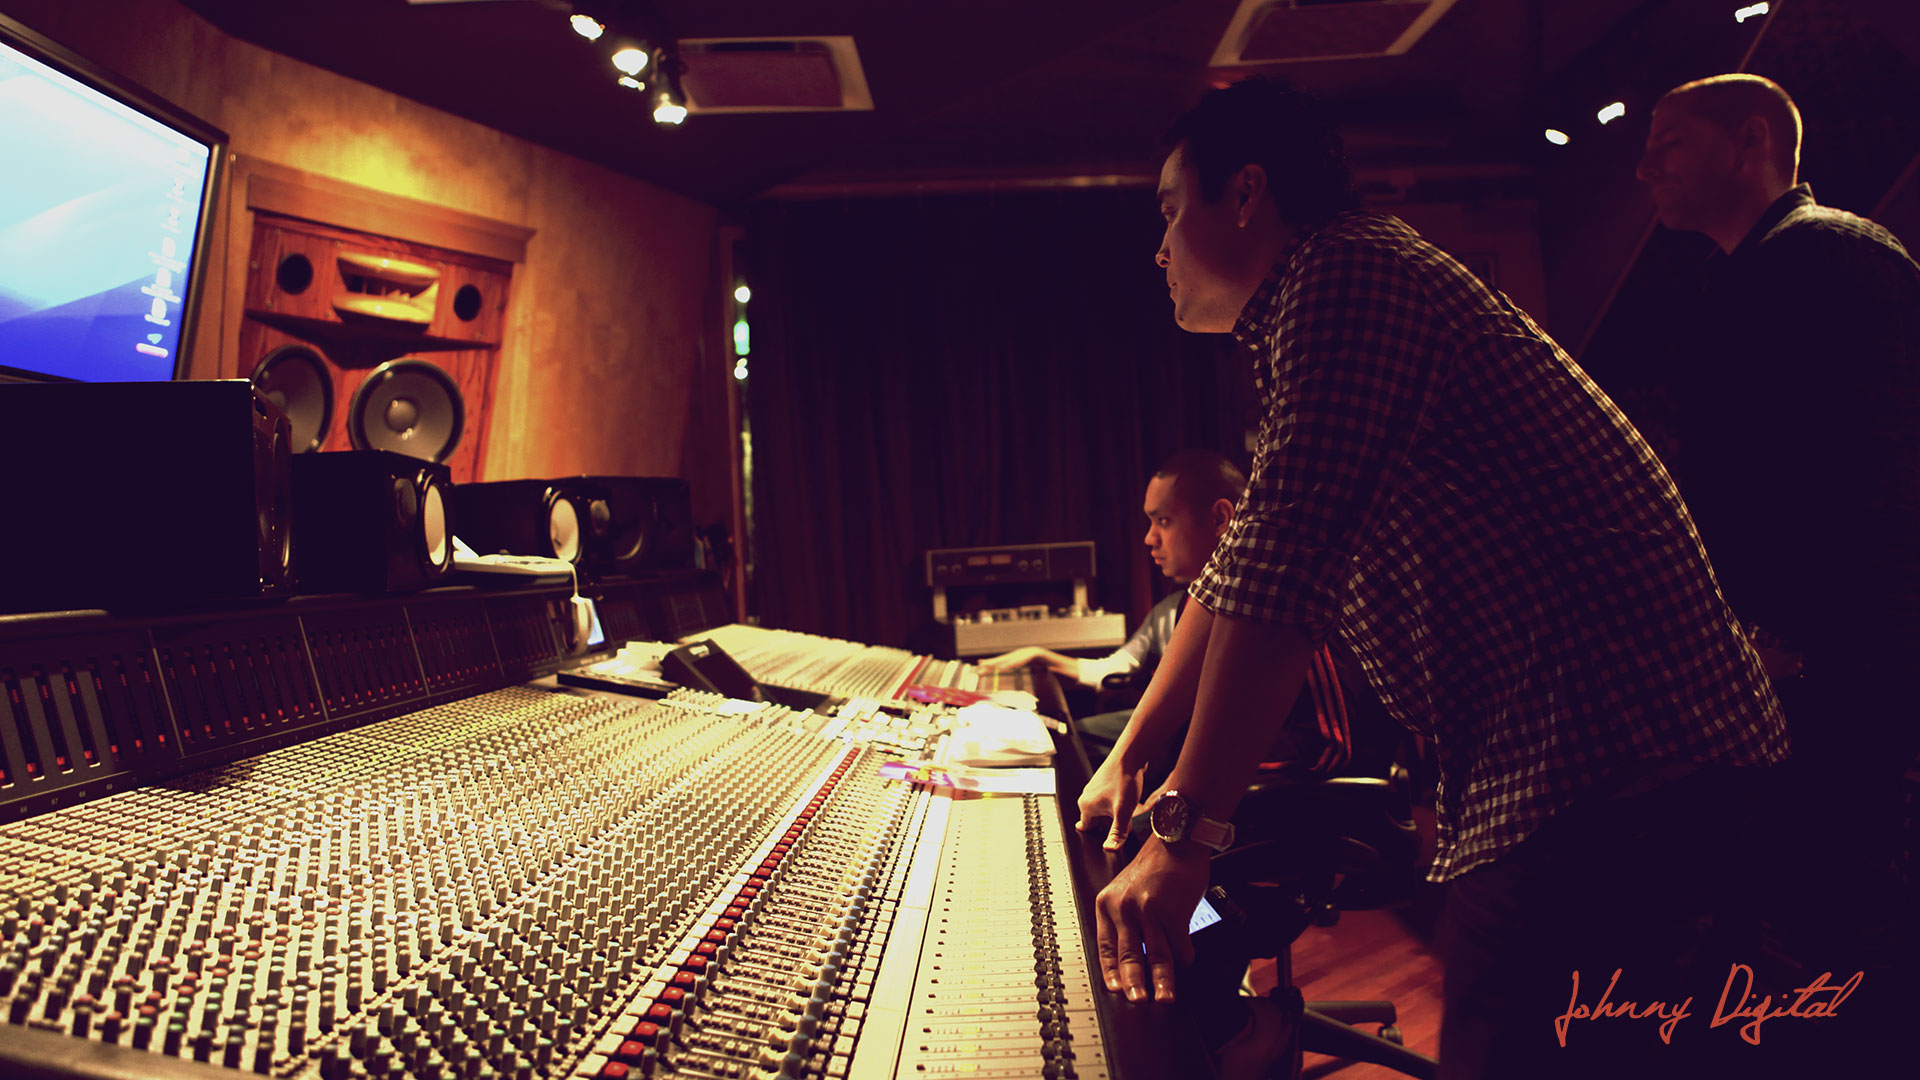 recording studio wallpaper joy - photo #30